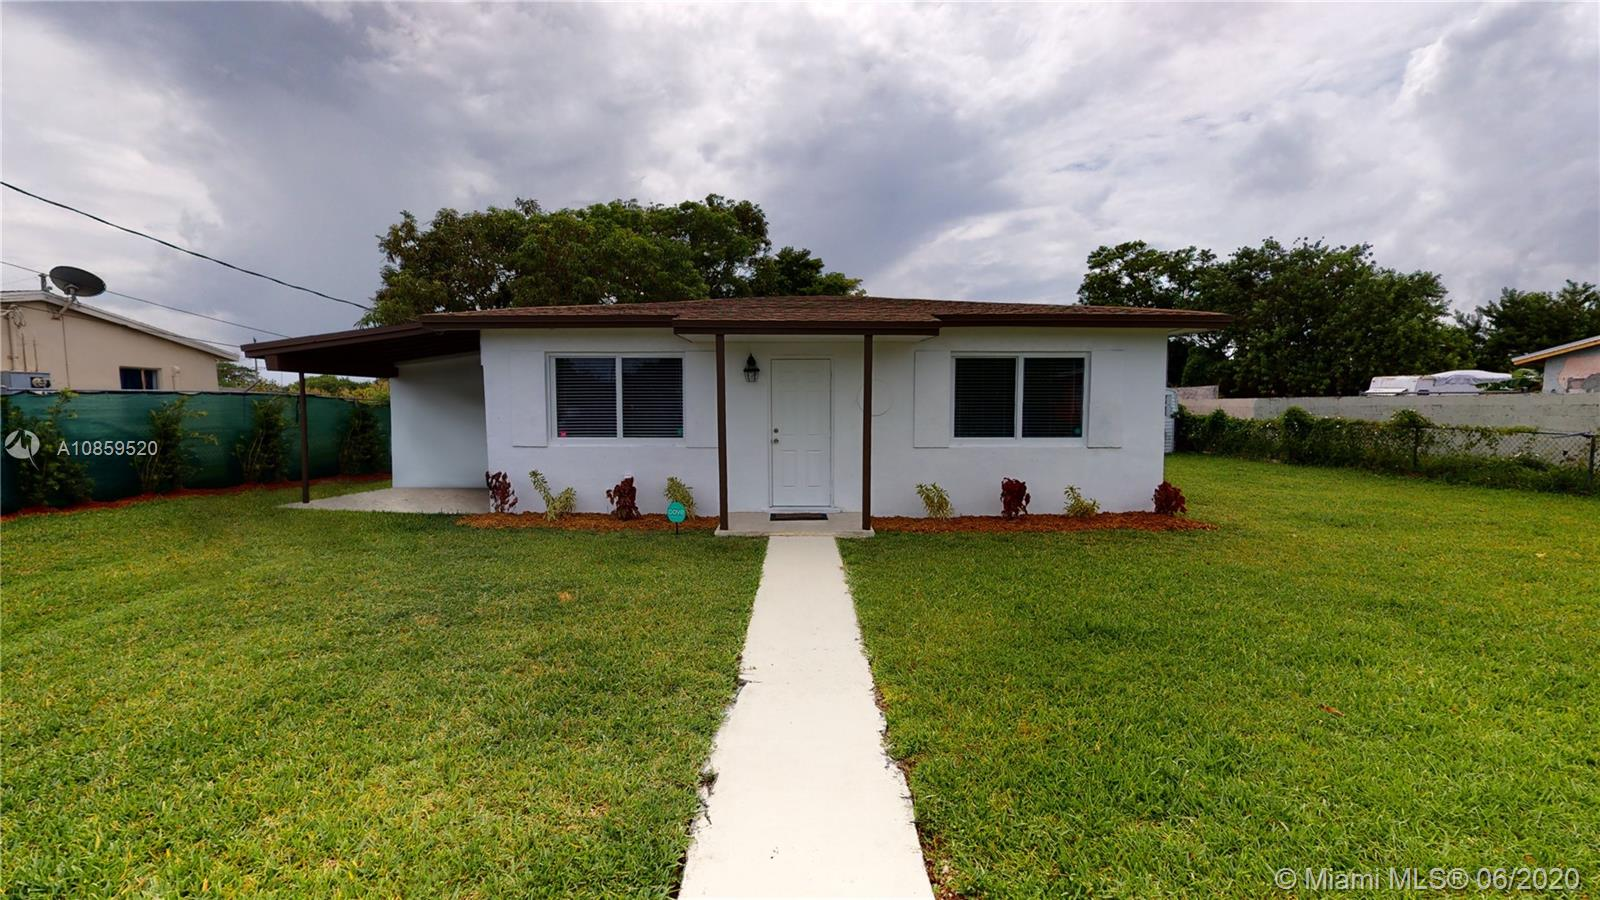 26520 SW 138th Ct Property Photo - Naranja, FL real estate listing